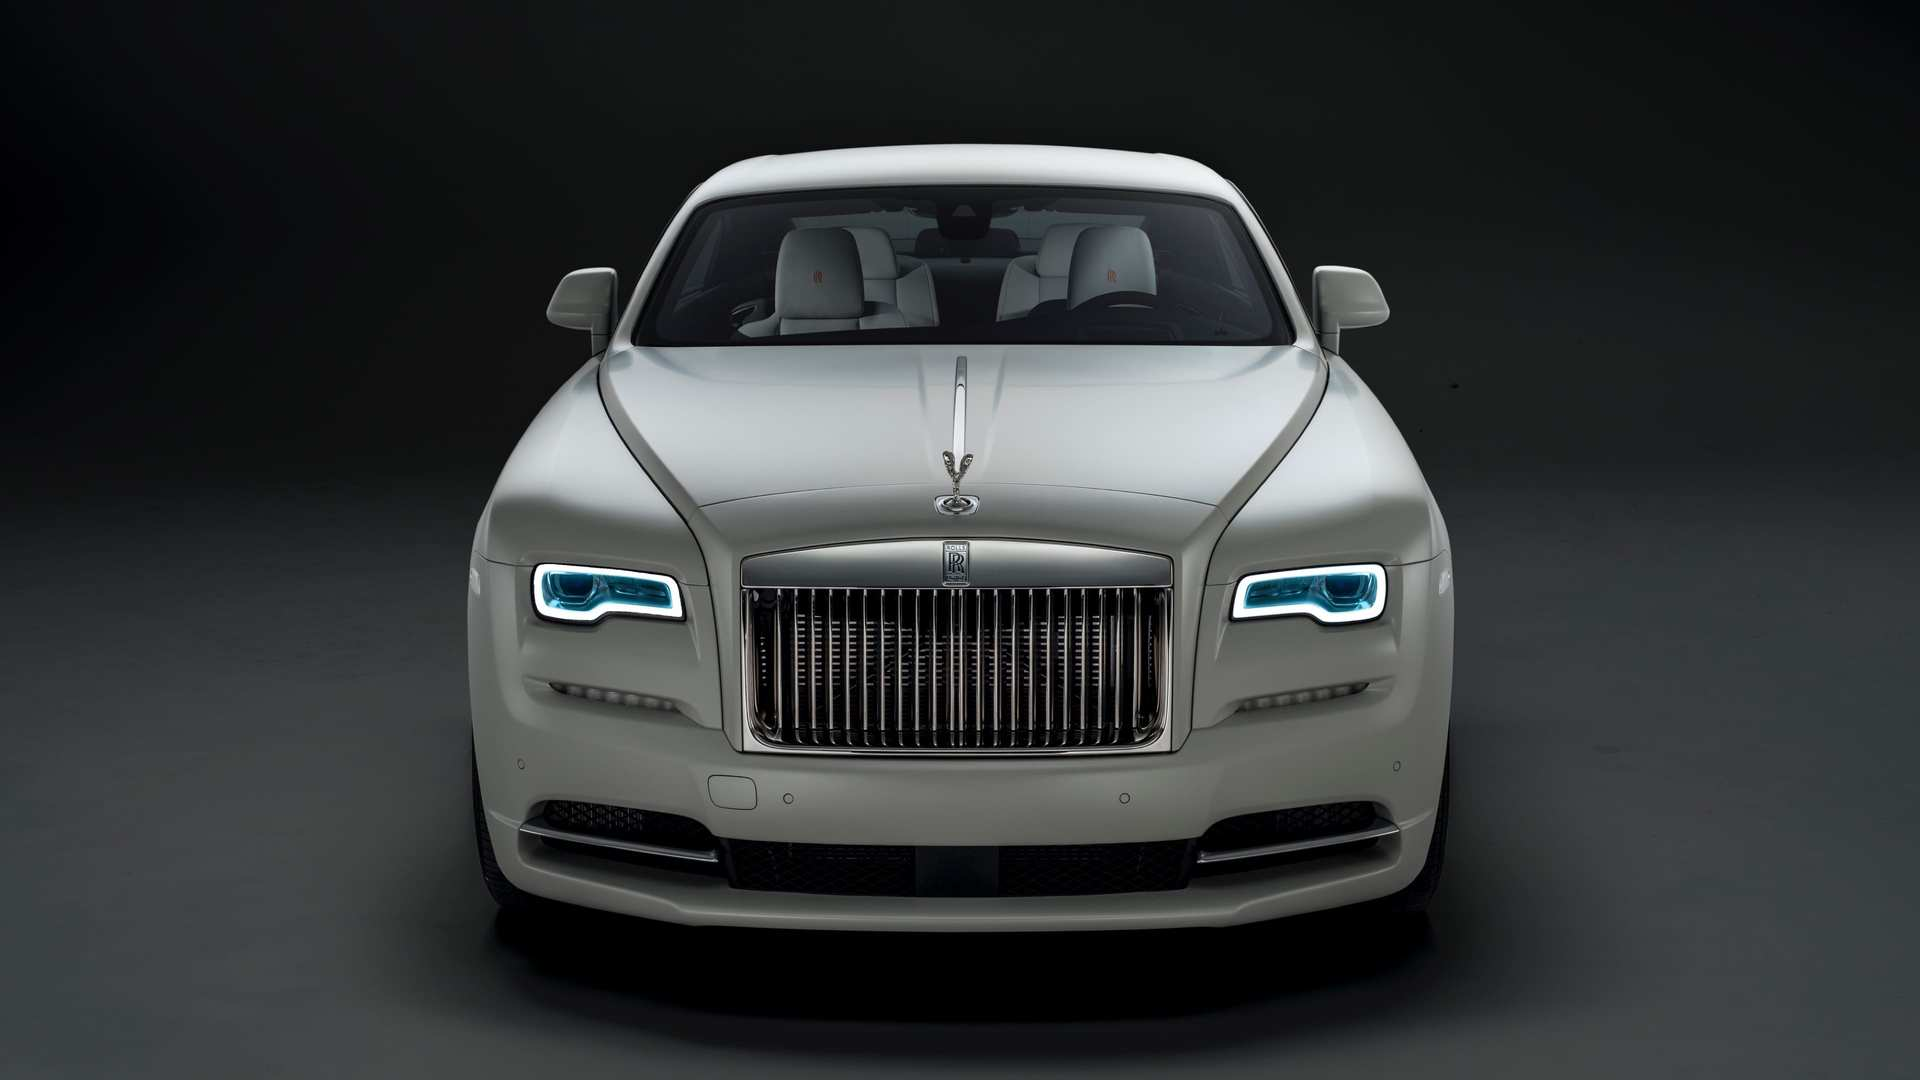 Rolls-Royce Wraith front view, Nebula collection